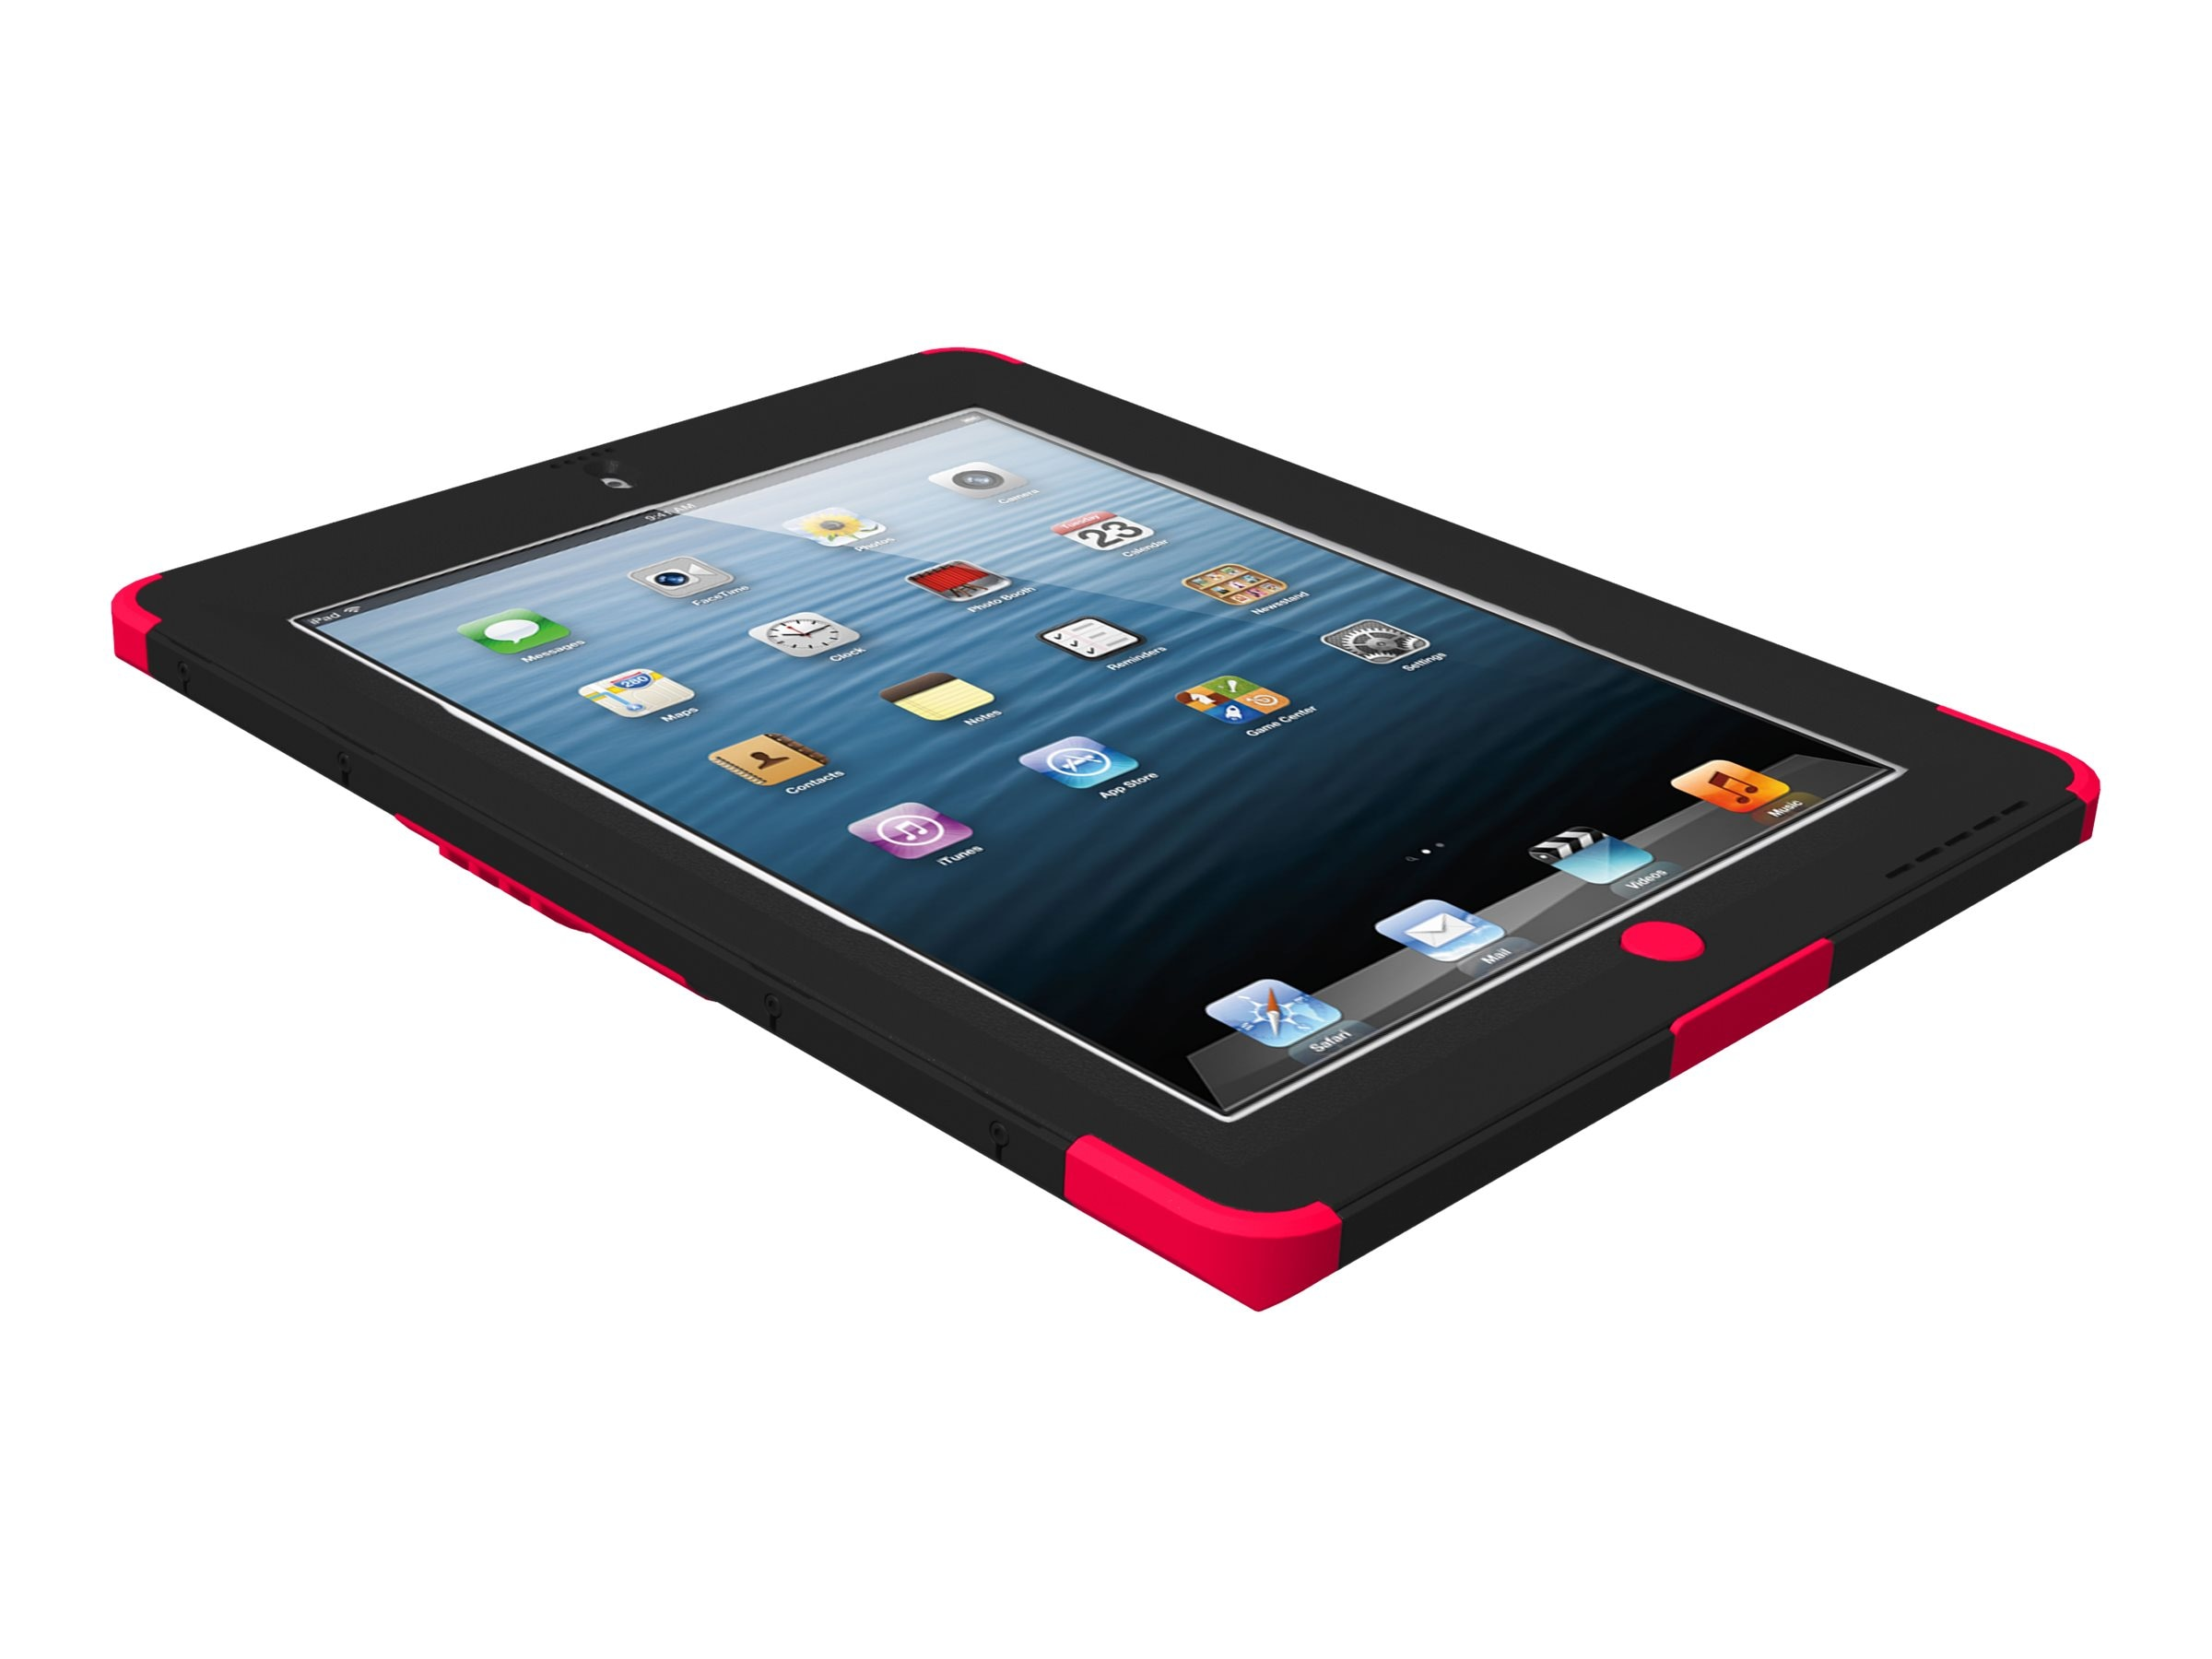 Trident Case AMS-NEW-IPADUS-RED Image 2